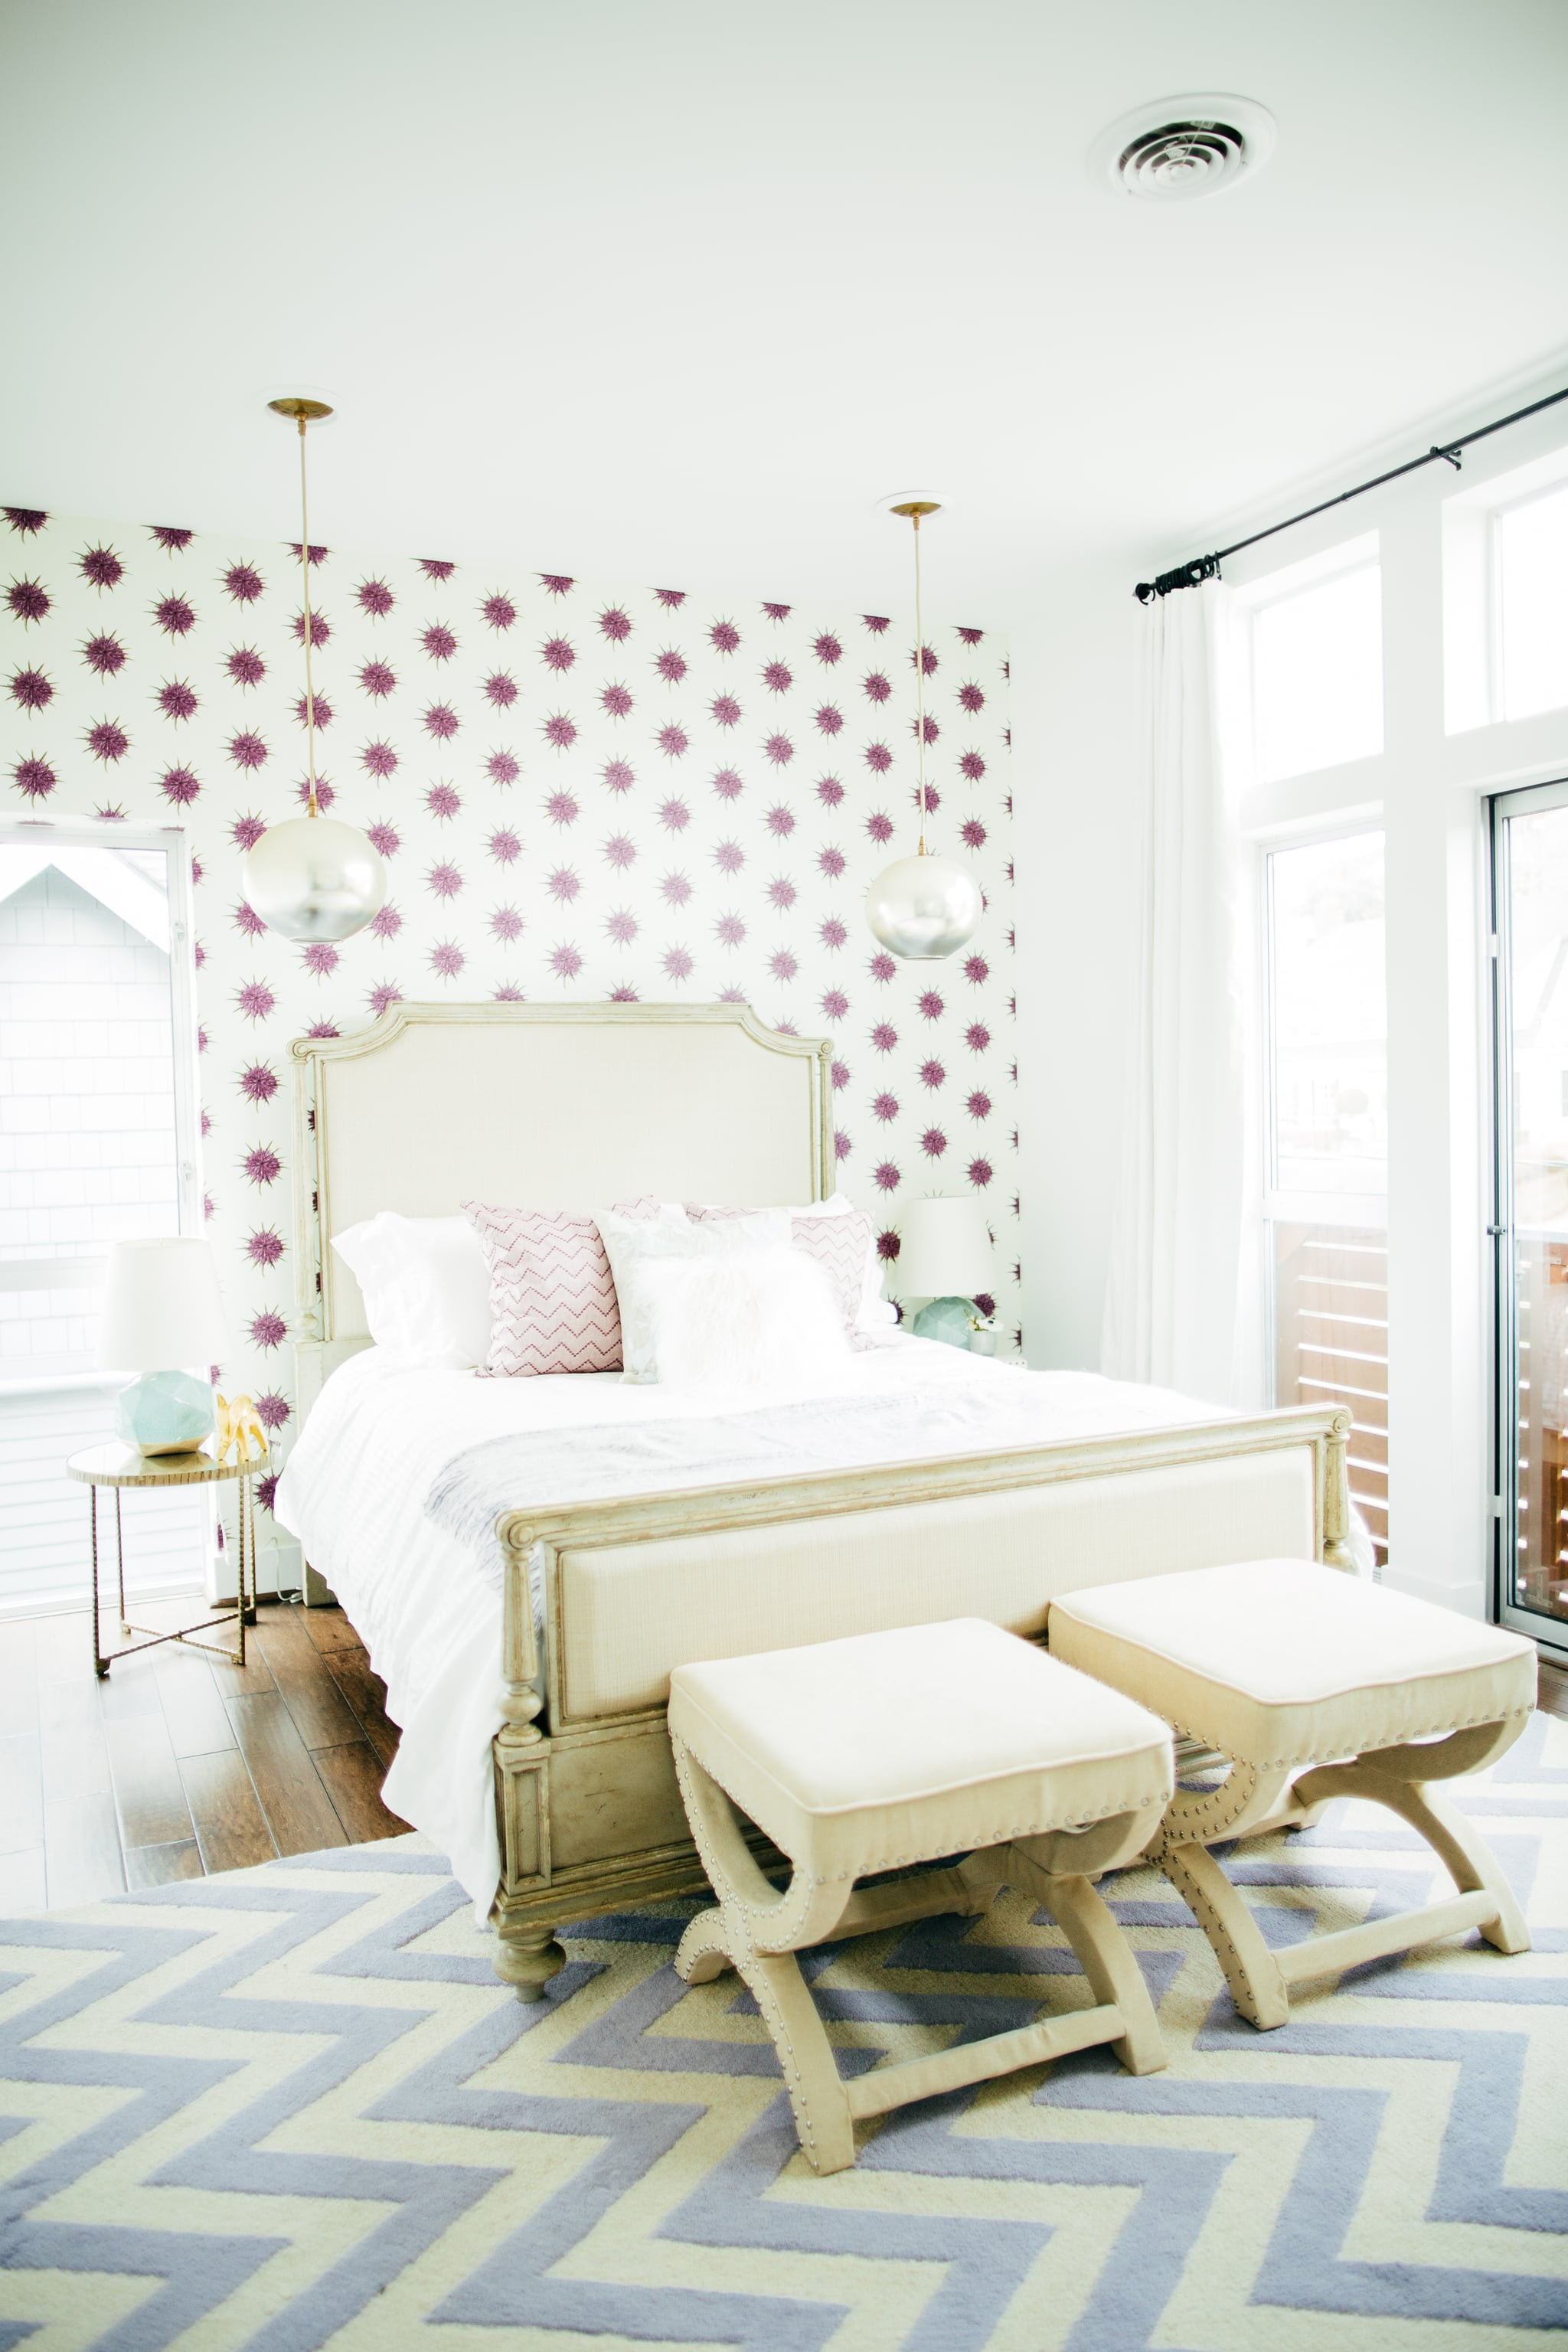 Best ideas about Accent Wall Decor . Save or Pin Wallpaper an Accent Wall Now.